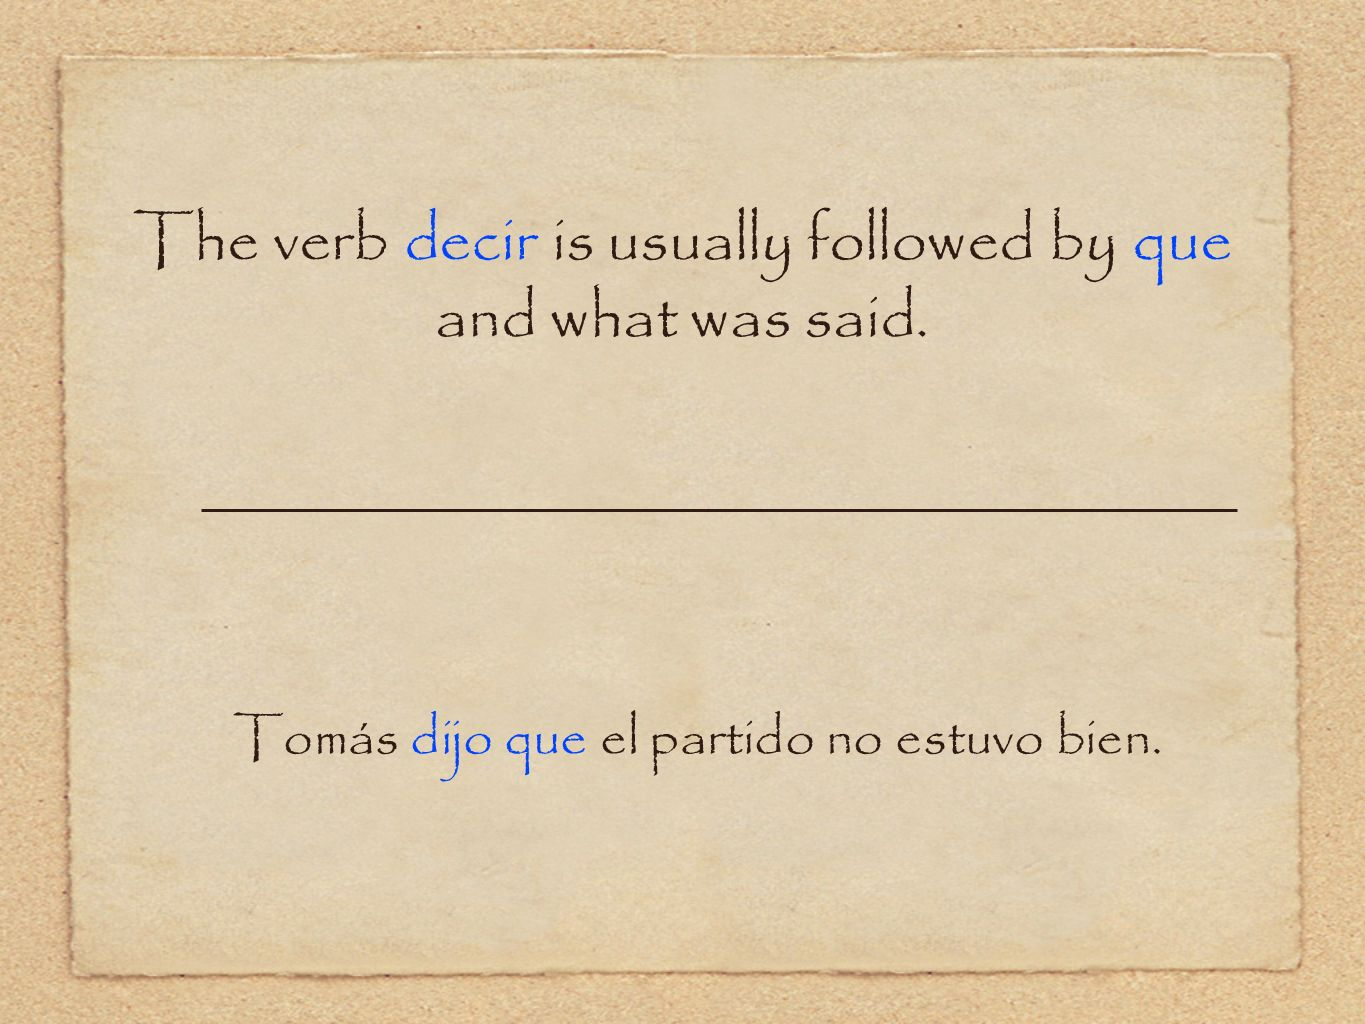 The verb decir is usually followed by que and what was said.